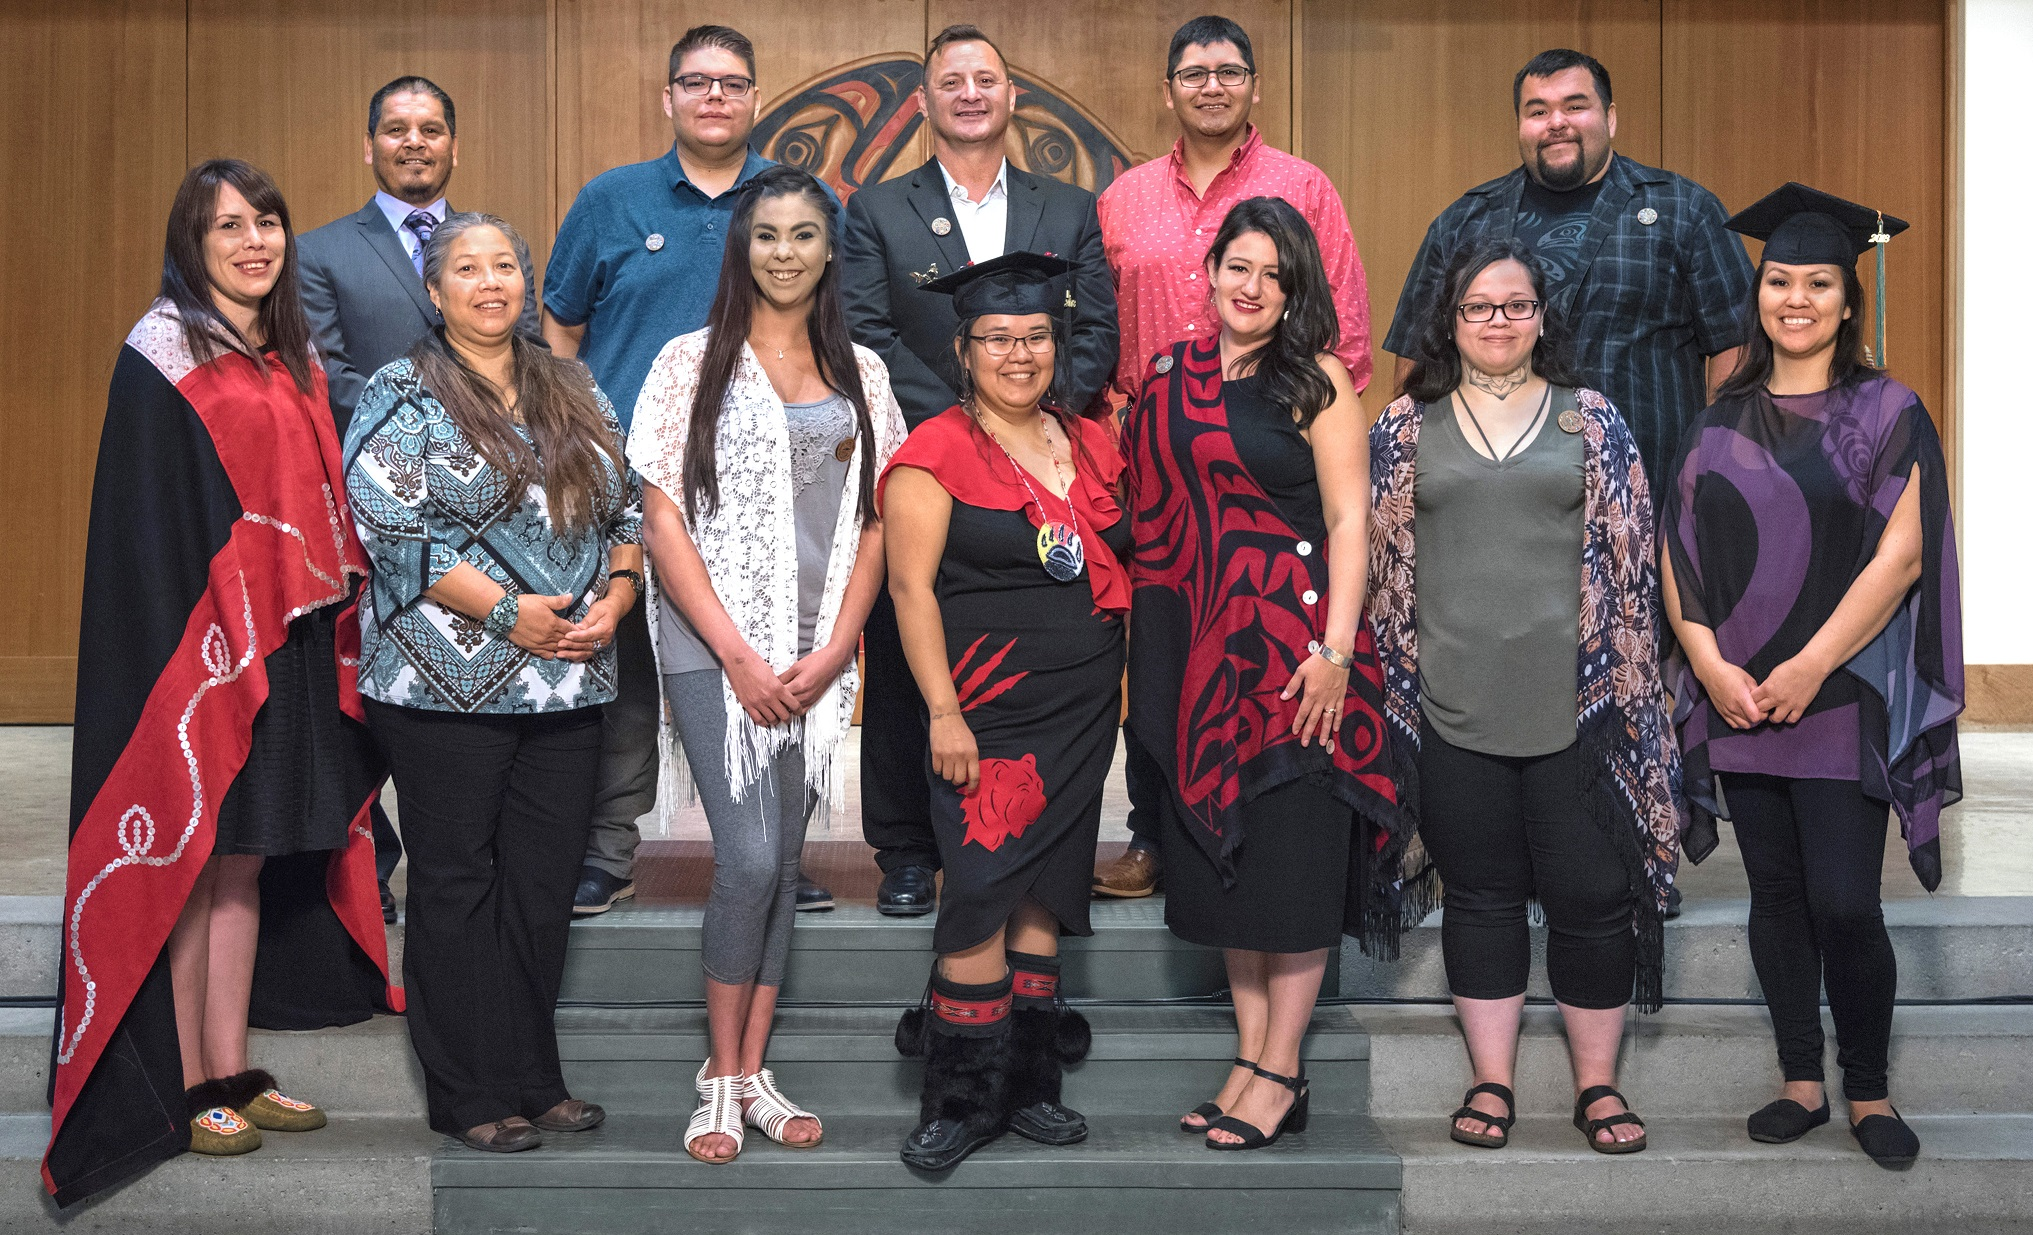 Ch'nook encourages and supports business education opportunities for Indigenous people throughout B.C. through a wide range of programs and activities. The Advanced Management Program provides business management skills to individuals from the Indigenous community with at least five years of work experience and a strong desire to start and manage business activities.